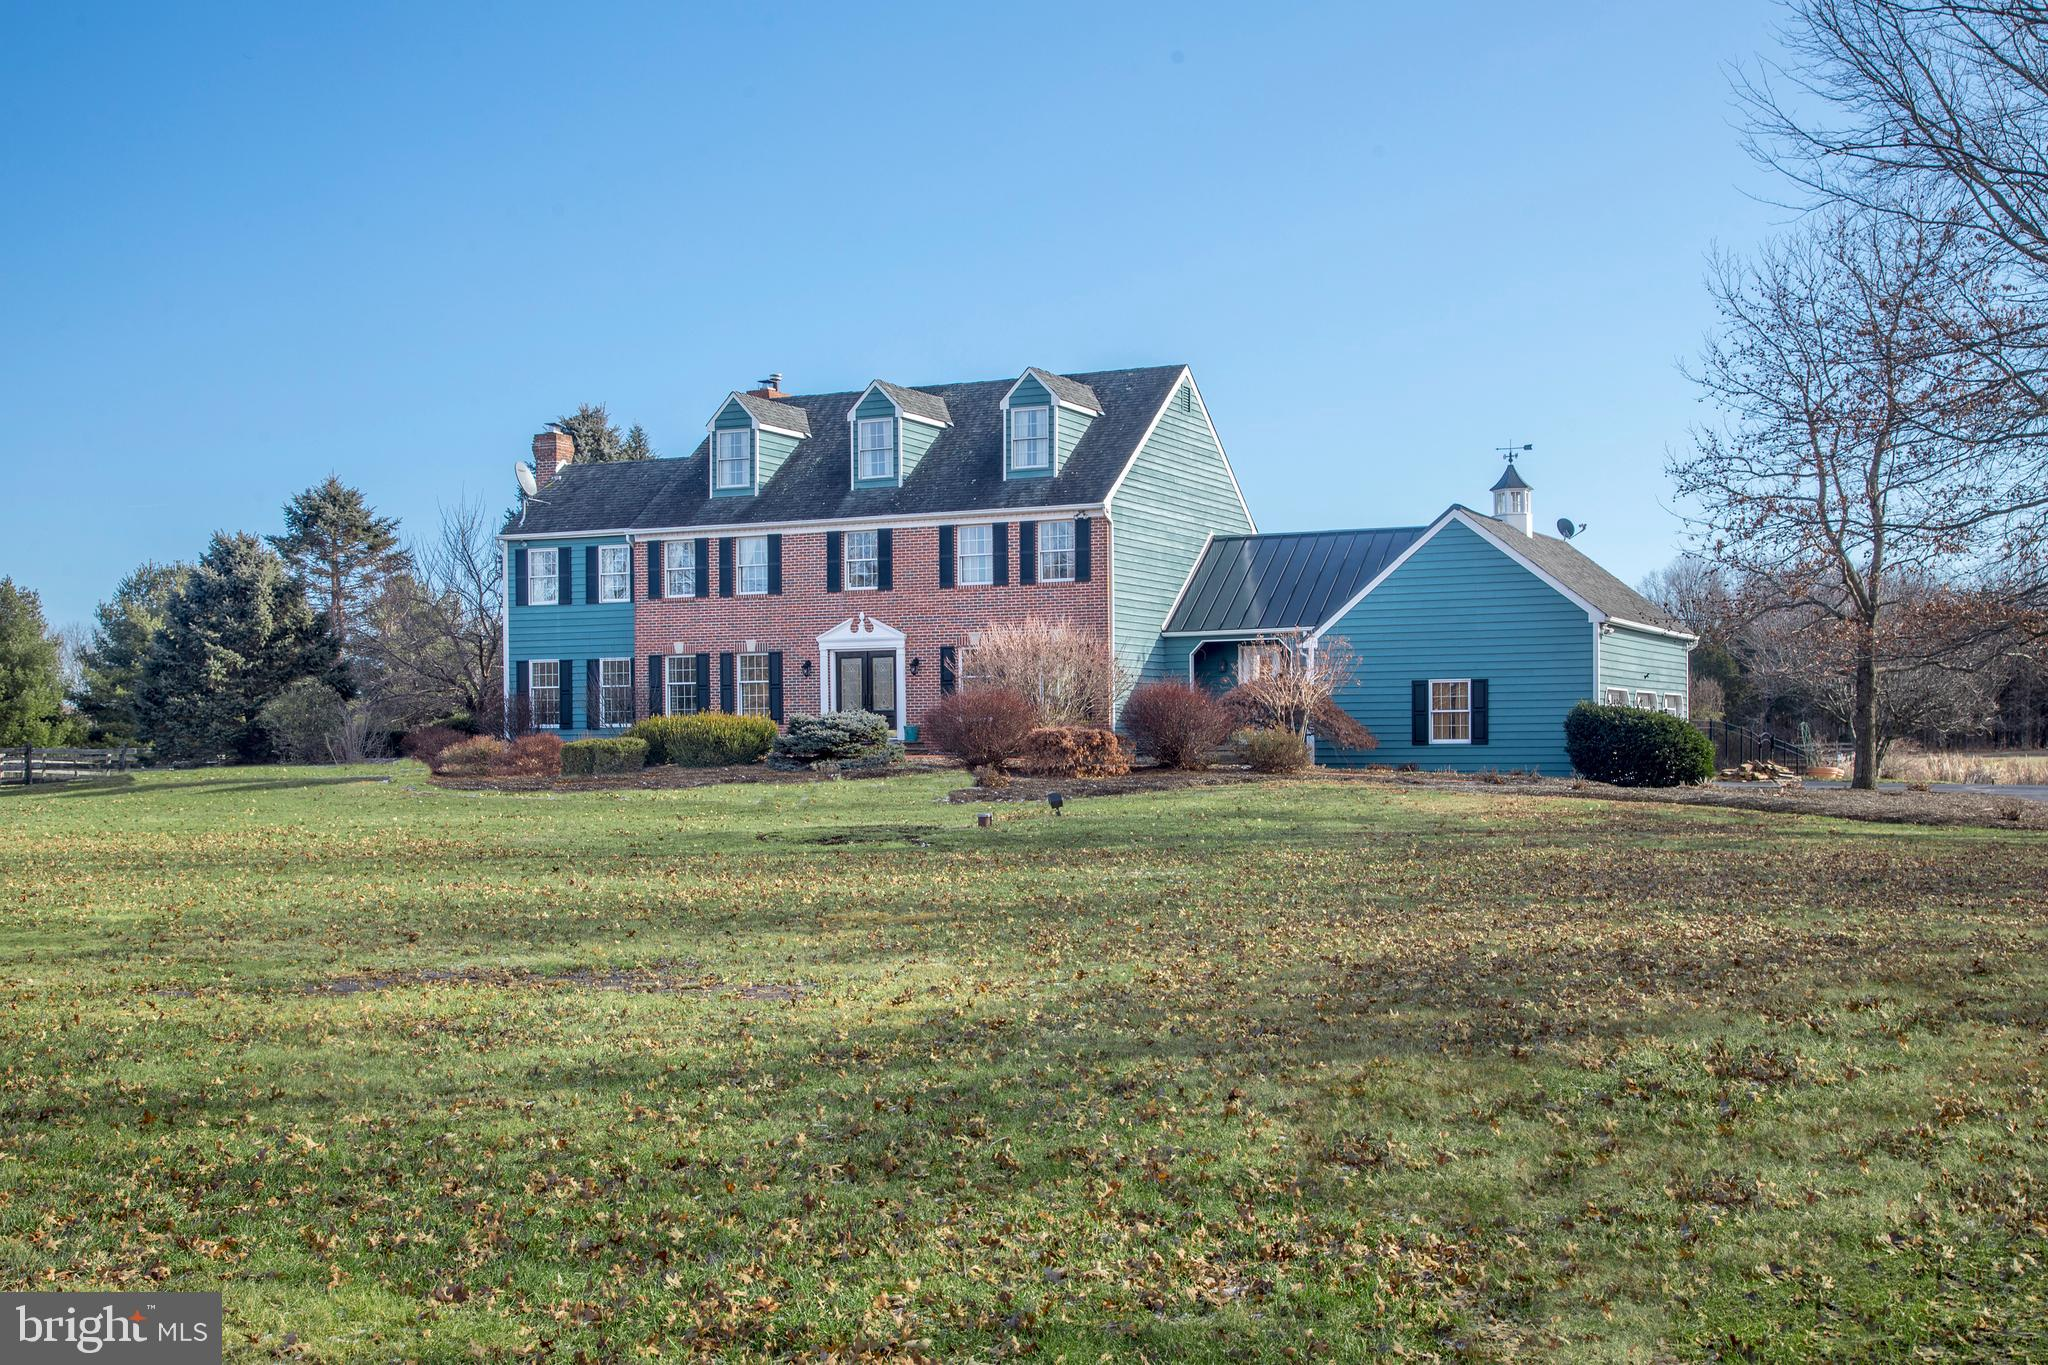 553 GEIGEL HILL ROAD, OTTSVILLE, PA 18942